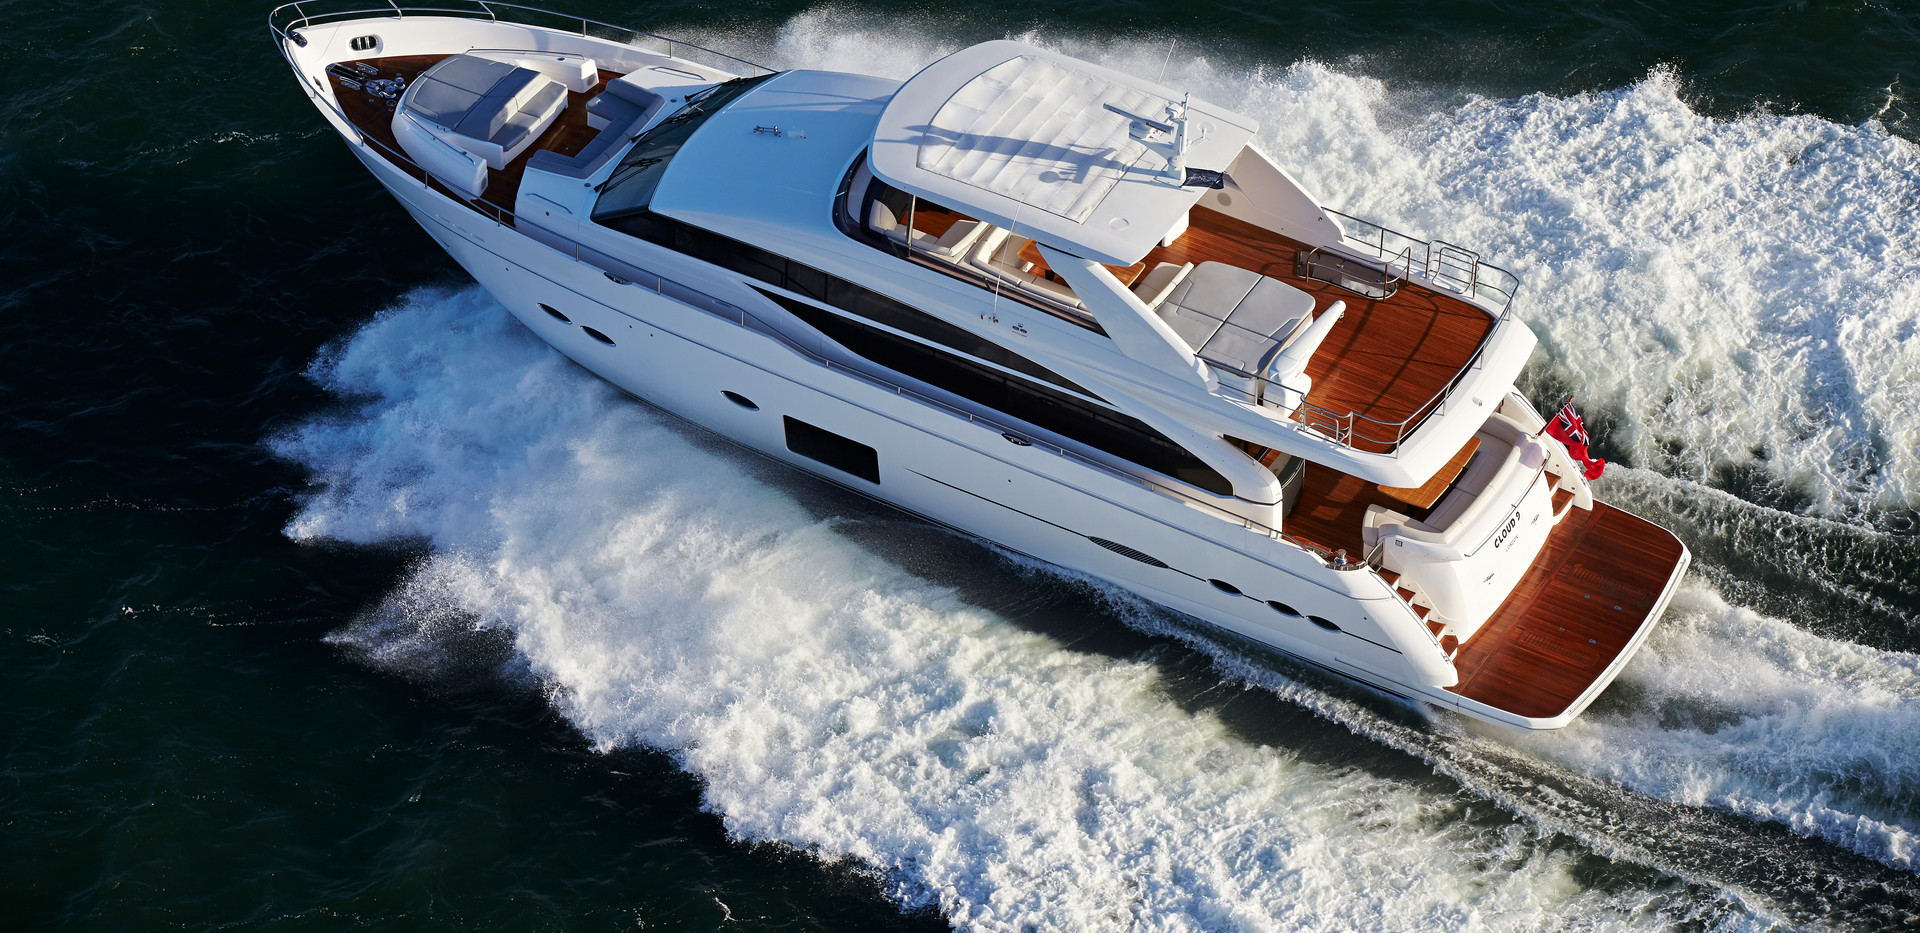 88-motor-yacht-exterior-white-hull-with-